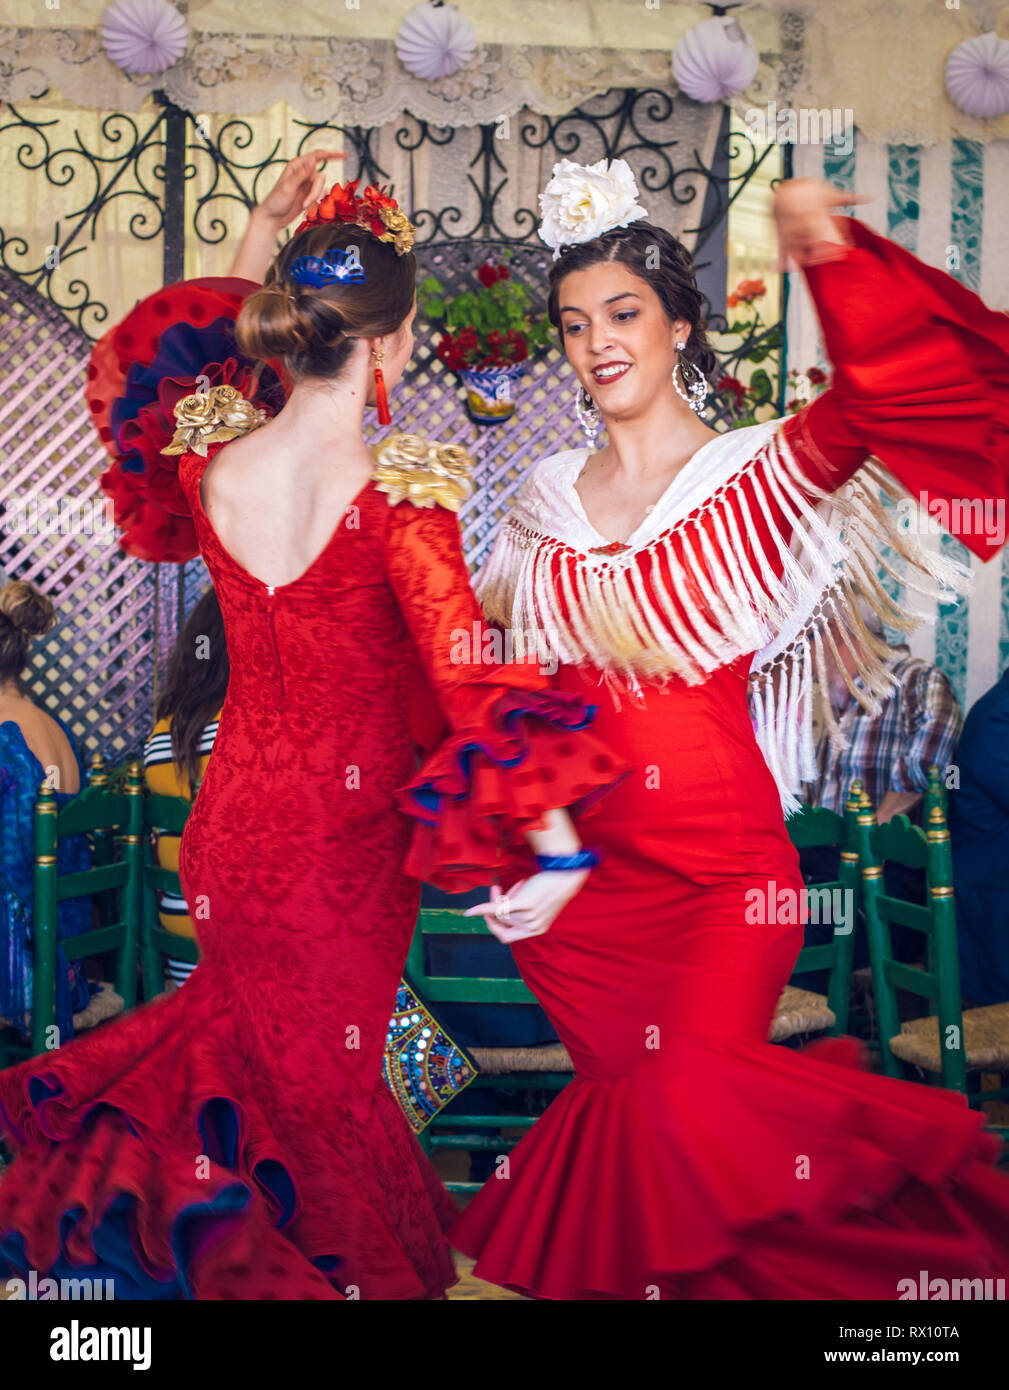 2523f2ddf610 Young and beautiful women wearing flamenco dresses and dancing